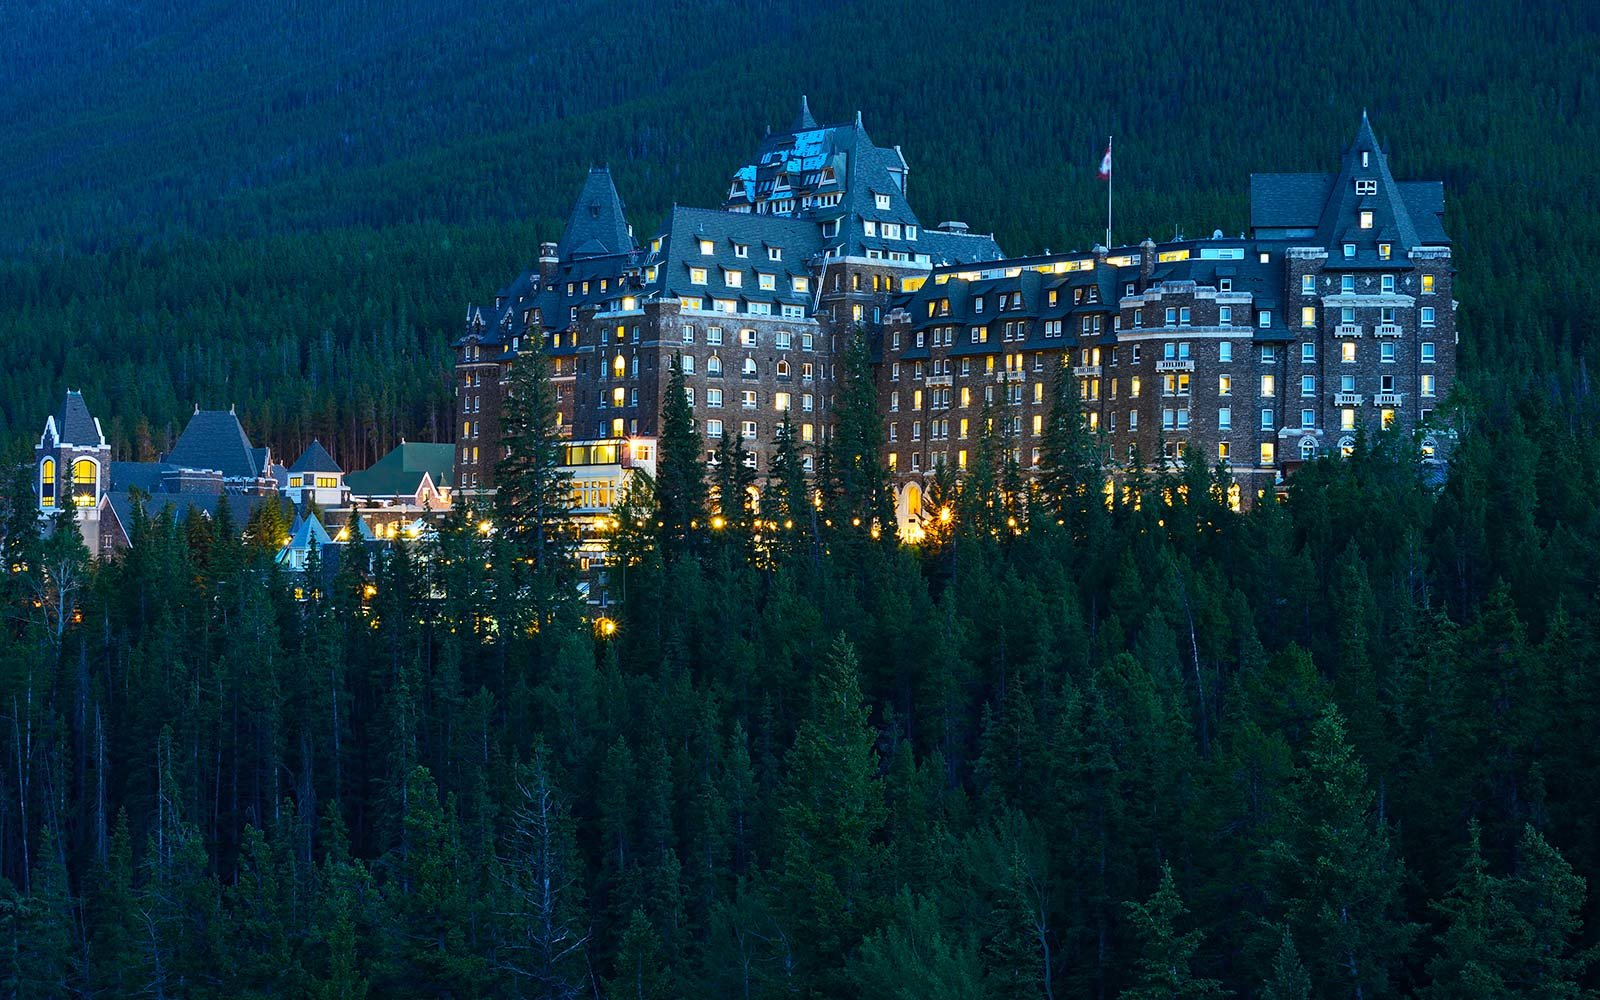 The Fairmont Banff Springs Hotel, Calgary, Alberta